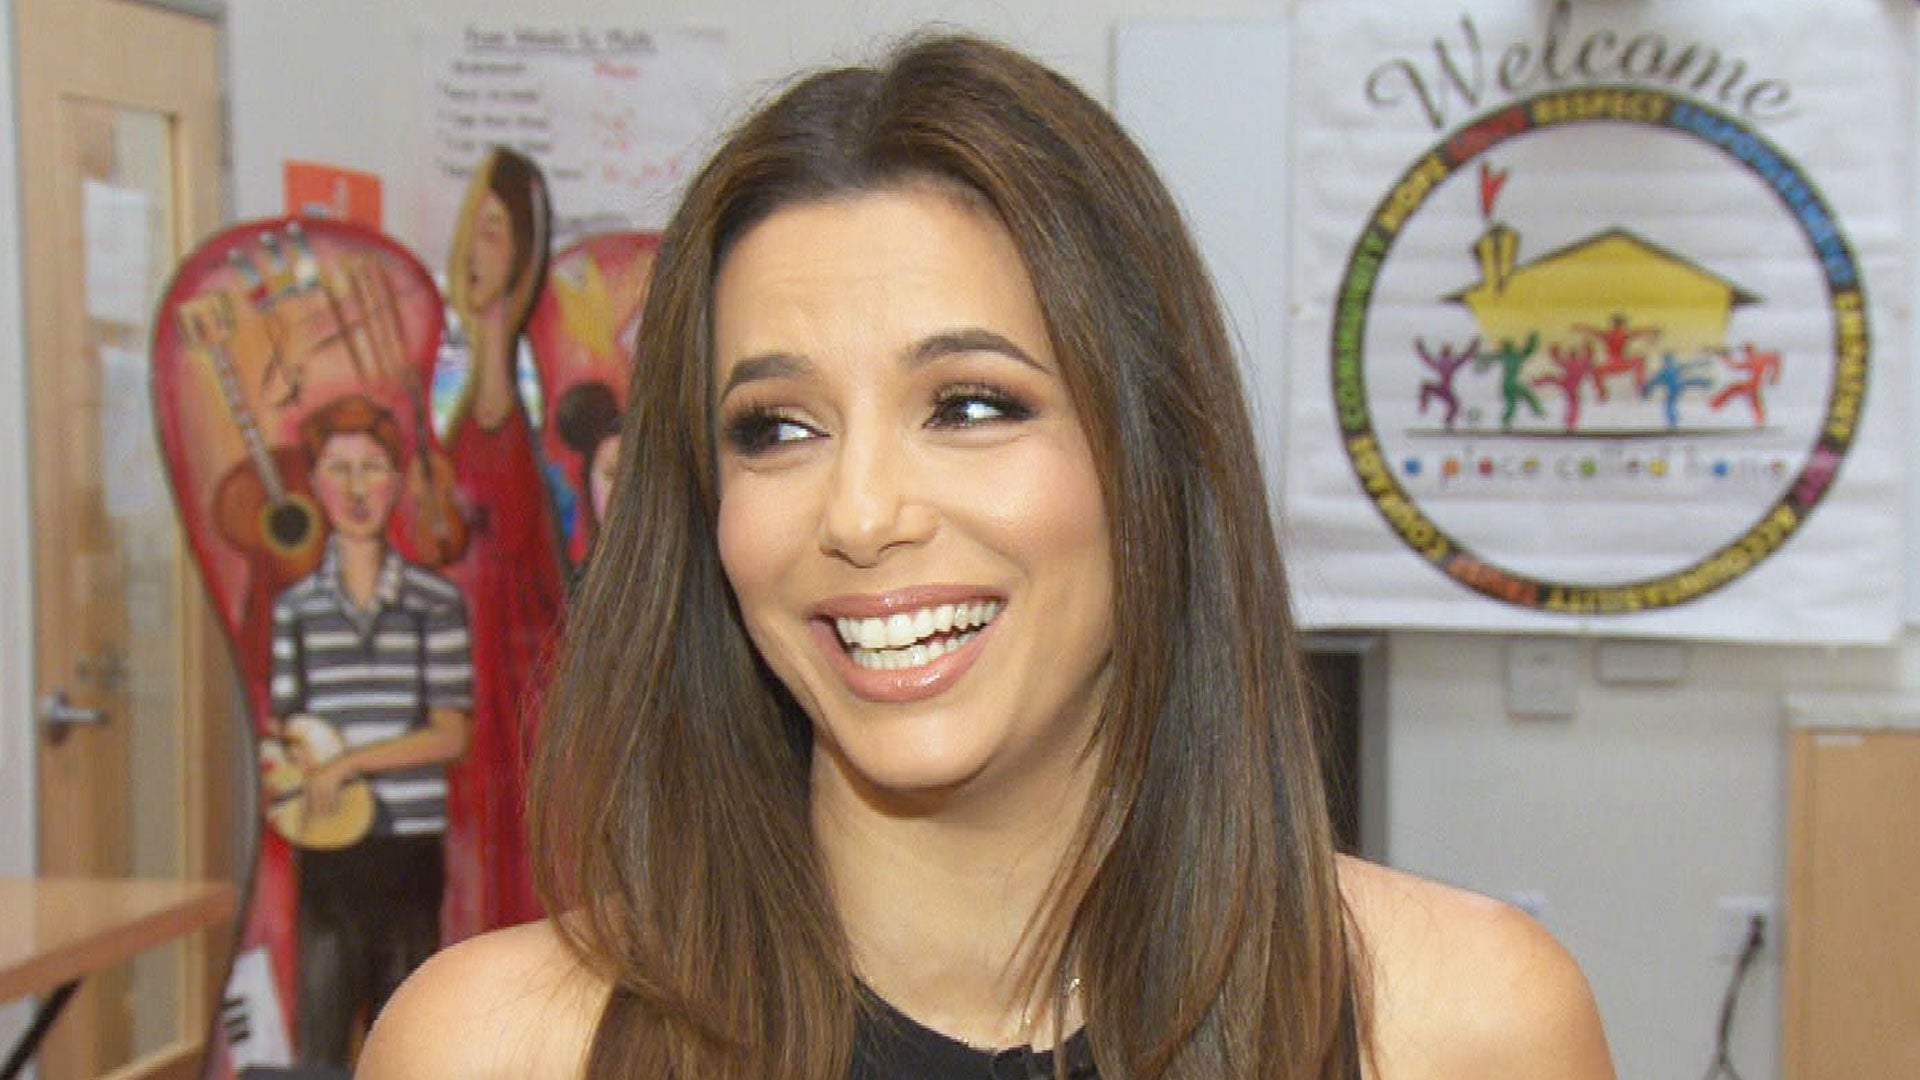 Eva Longoria Talks Learning by Example and Empowering Young Women in New Mentorship Program